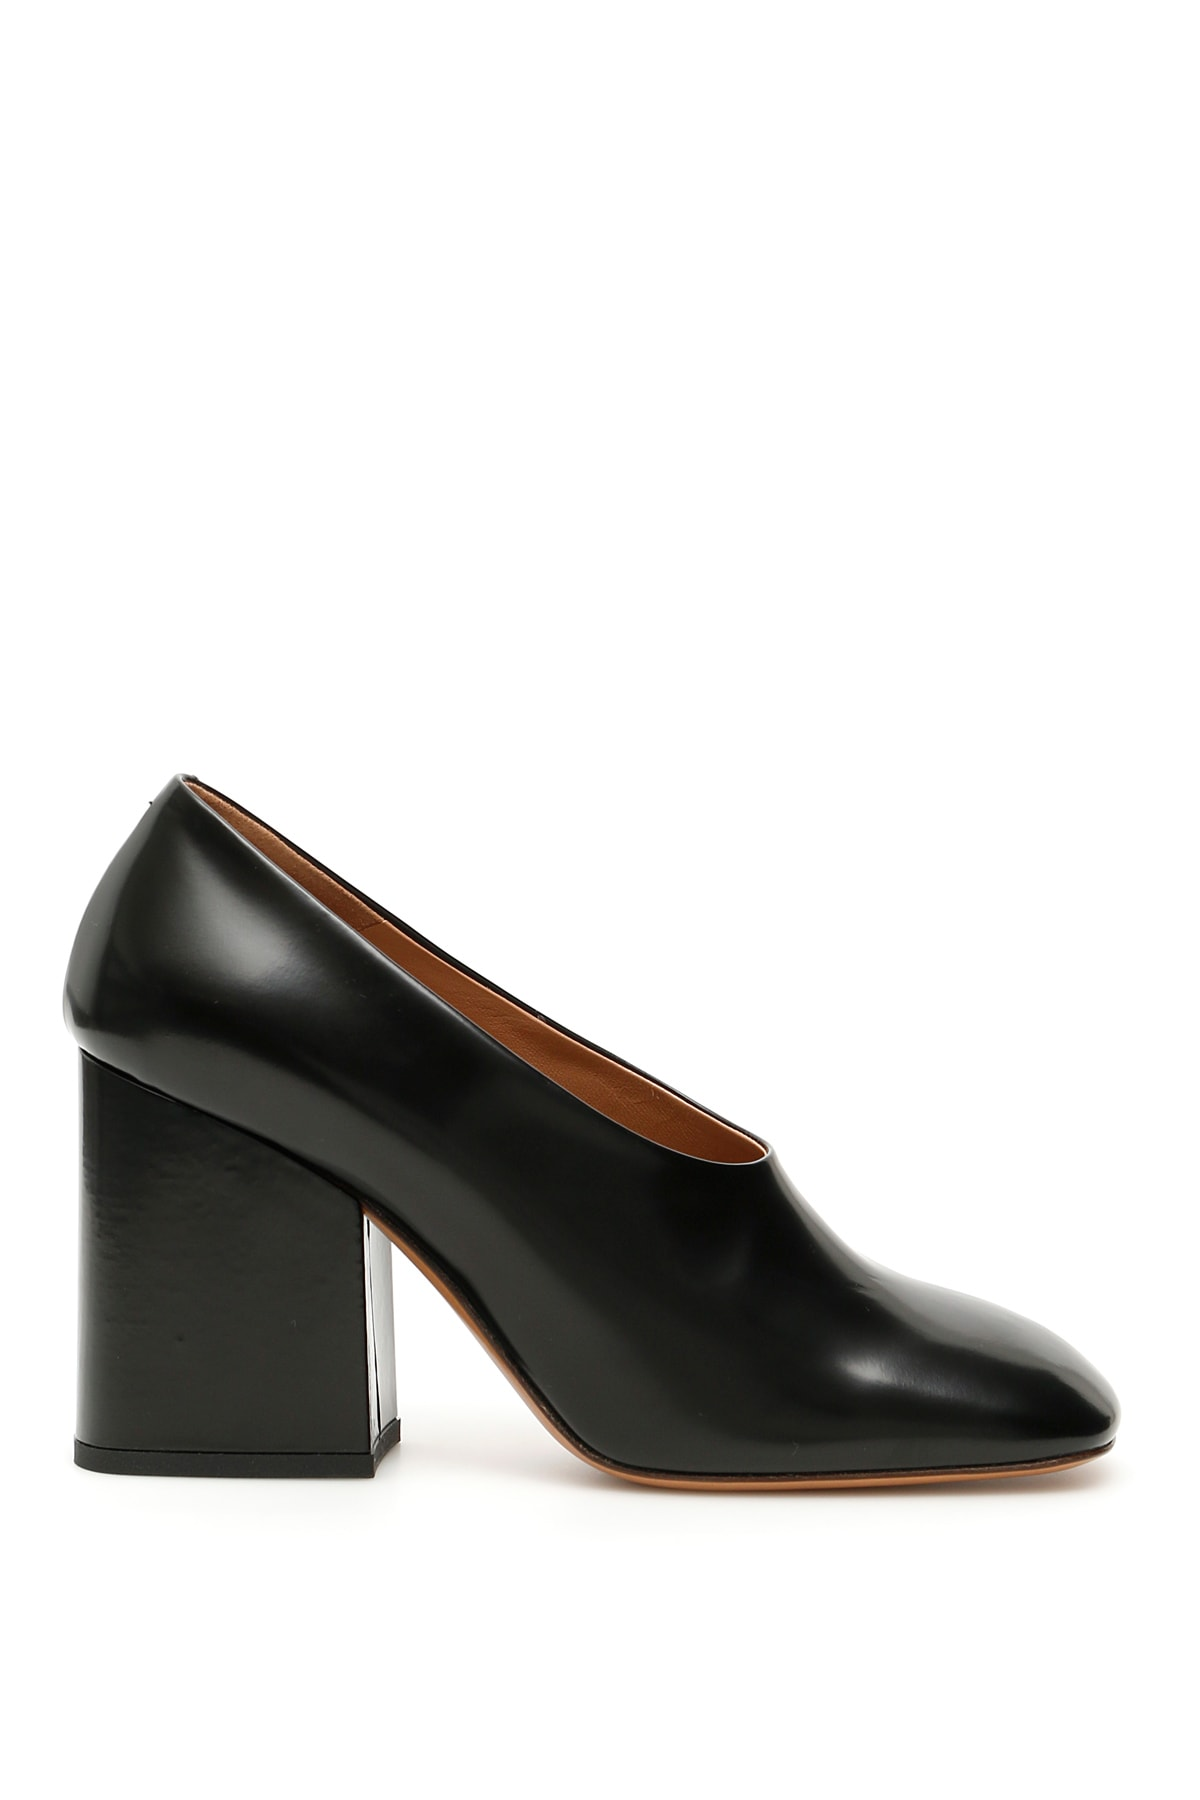 Marni Brushed Calfskin Pumps